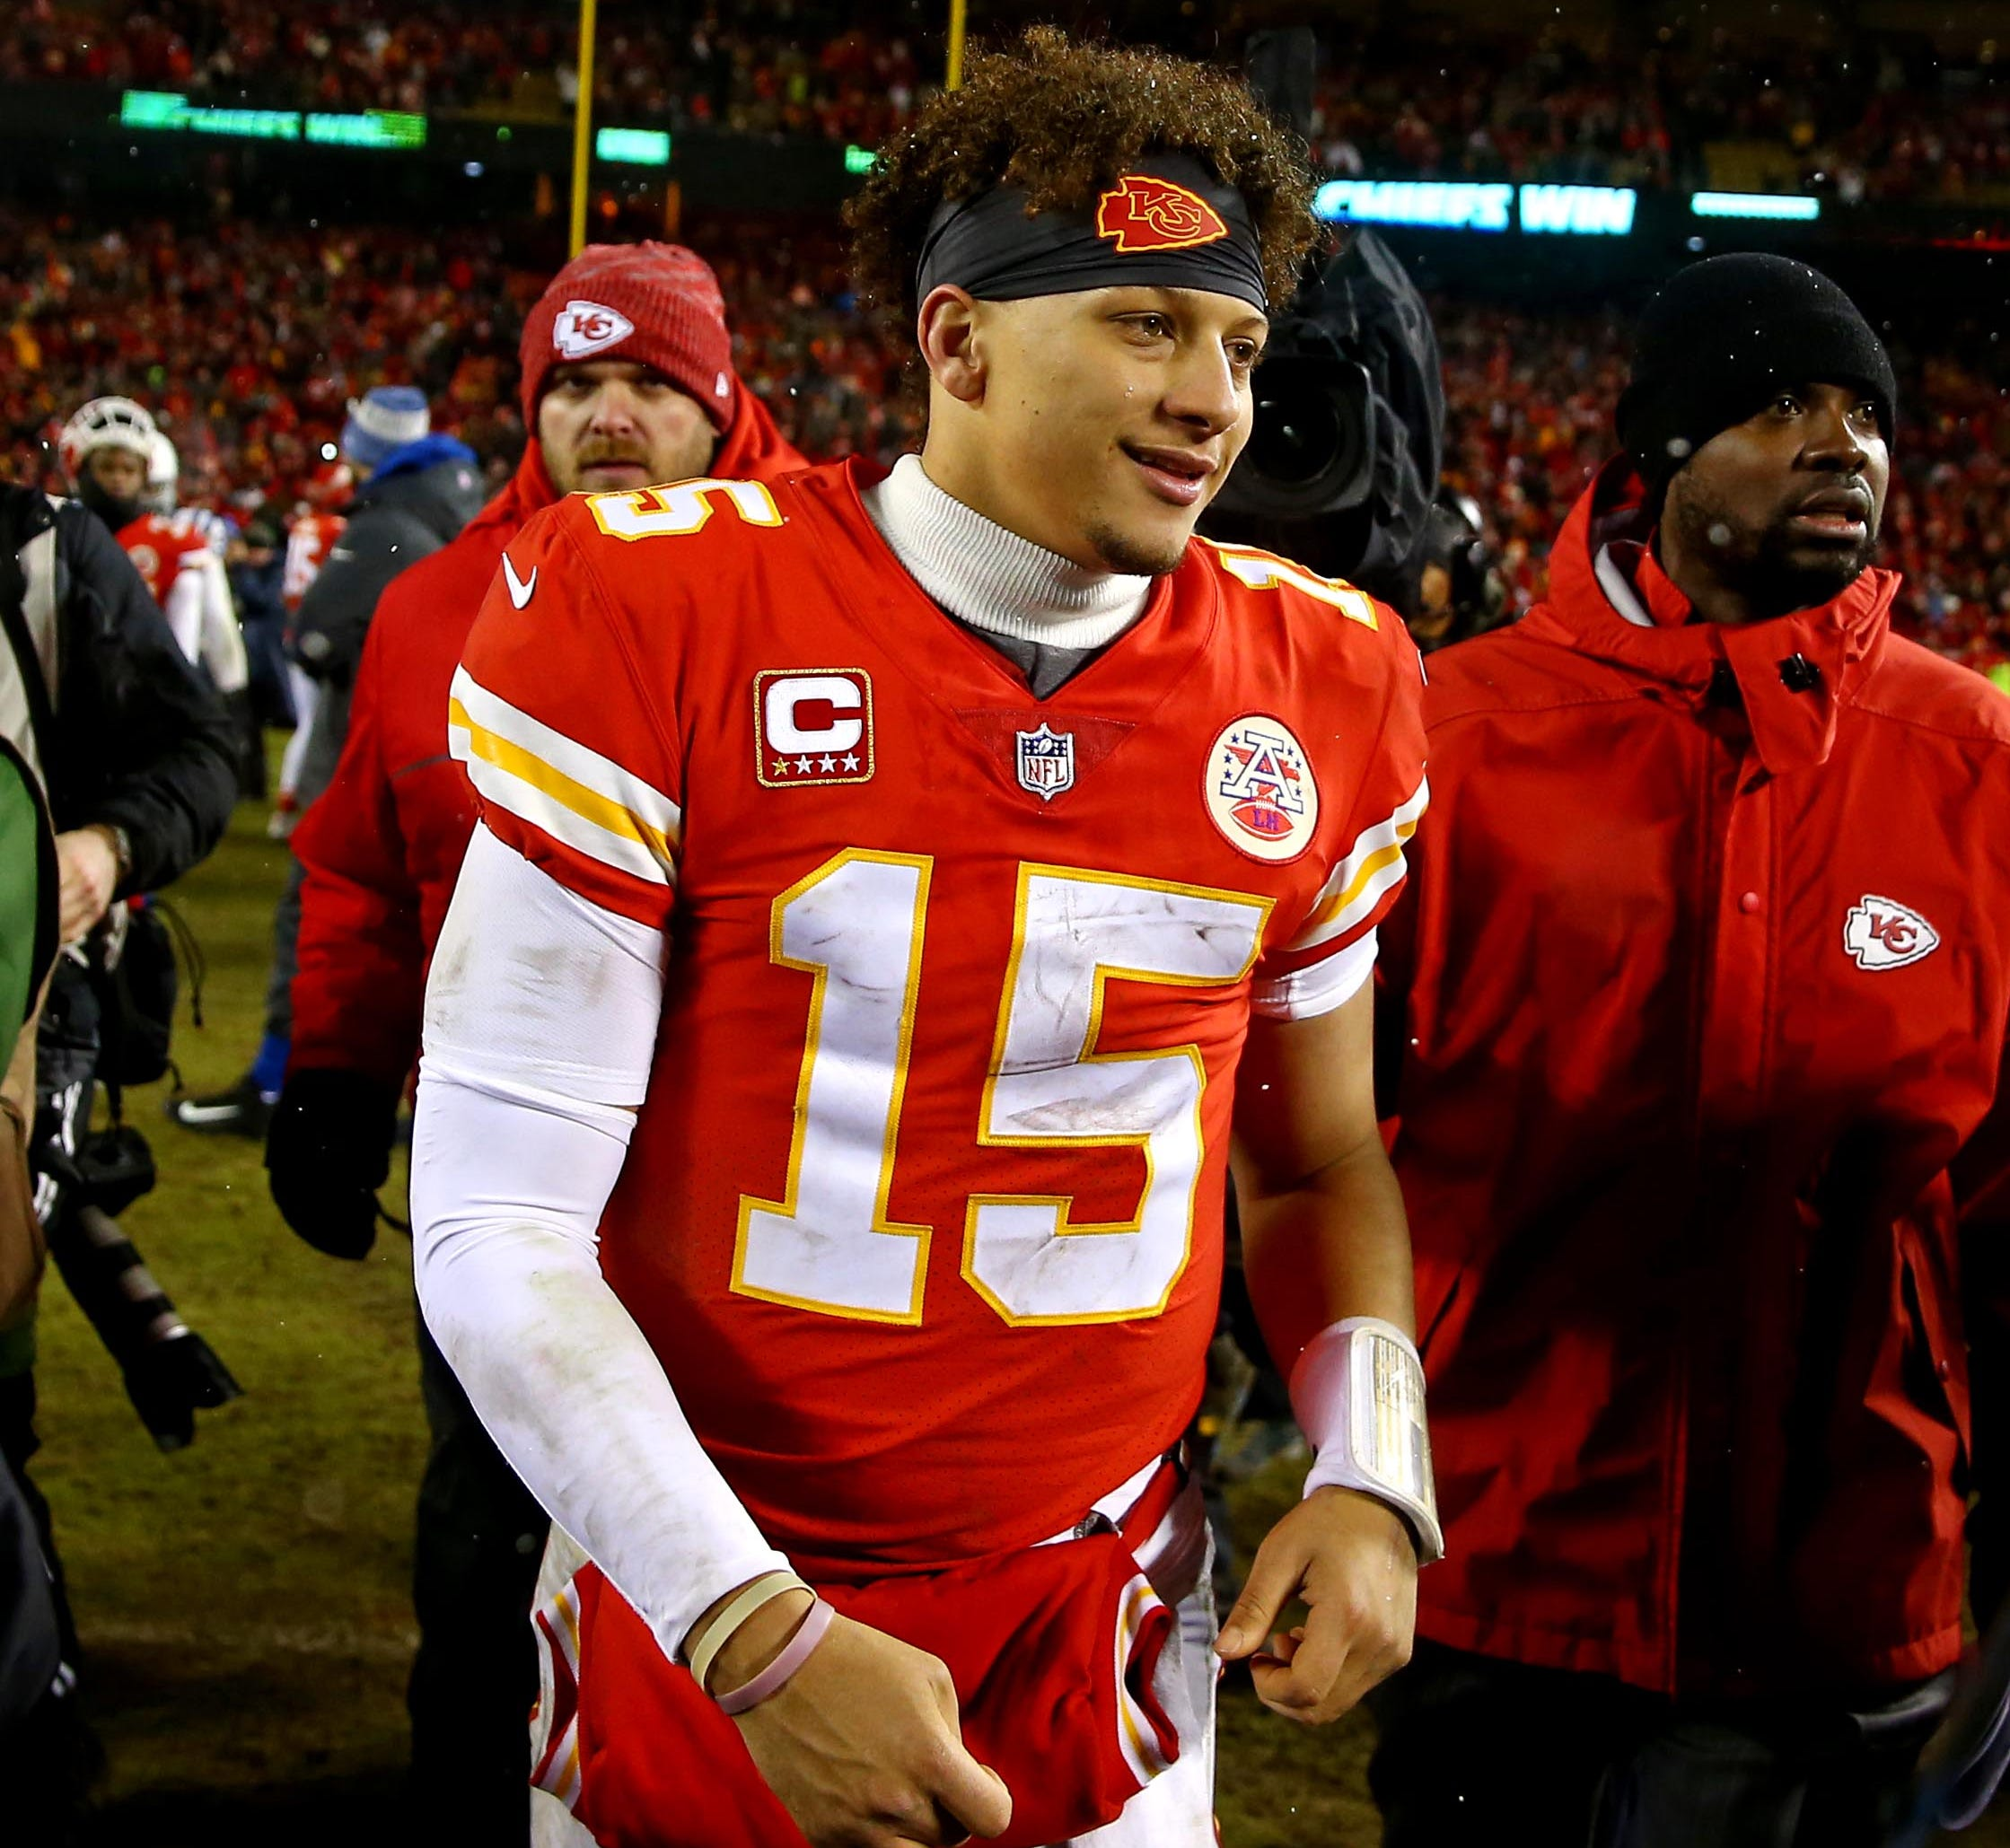 Chiefs quarterback Patrick Mahomes heads off the field after beating the  Colts in an AFC divisional playoff  game Saturday.